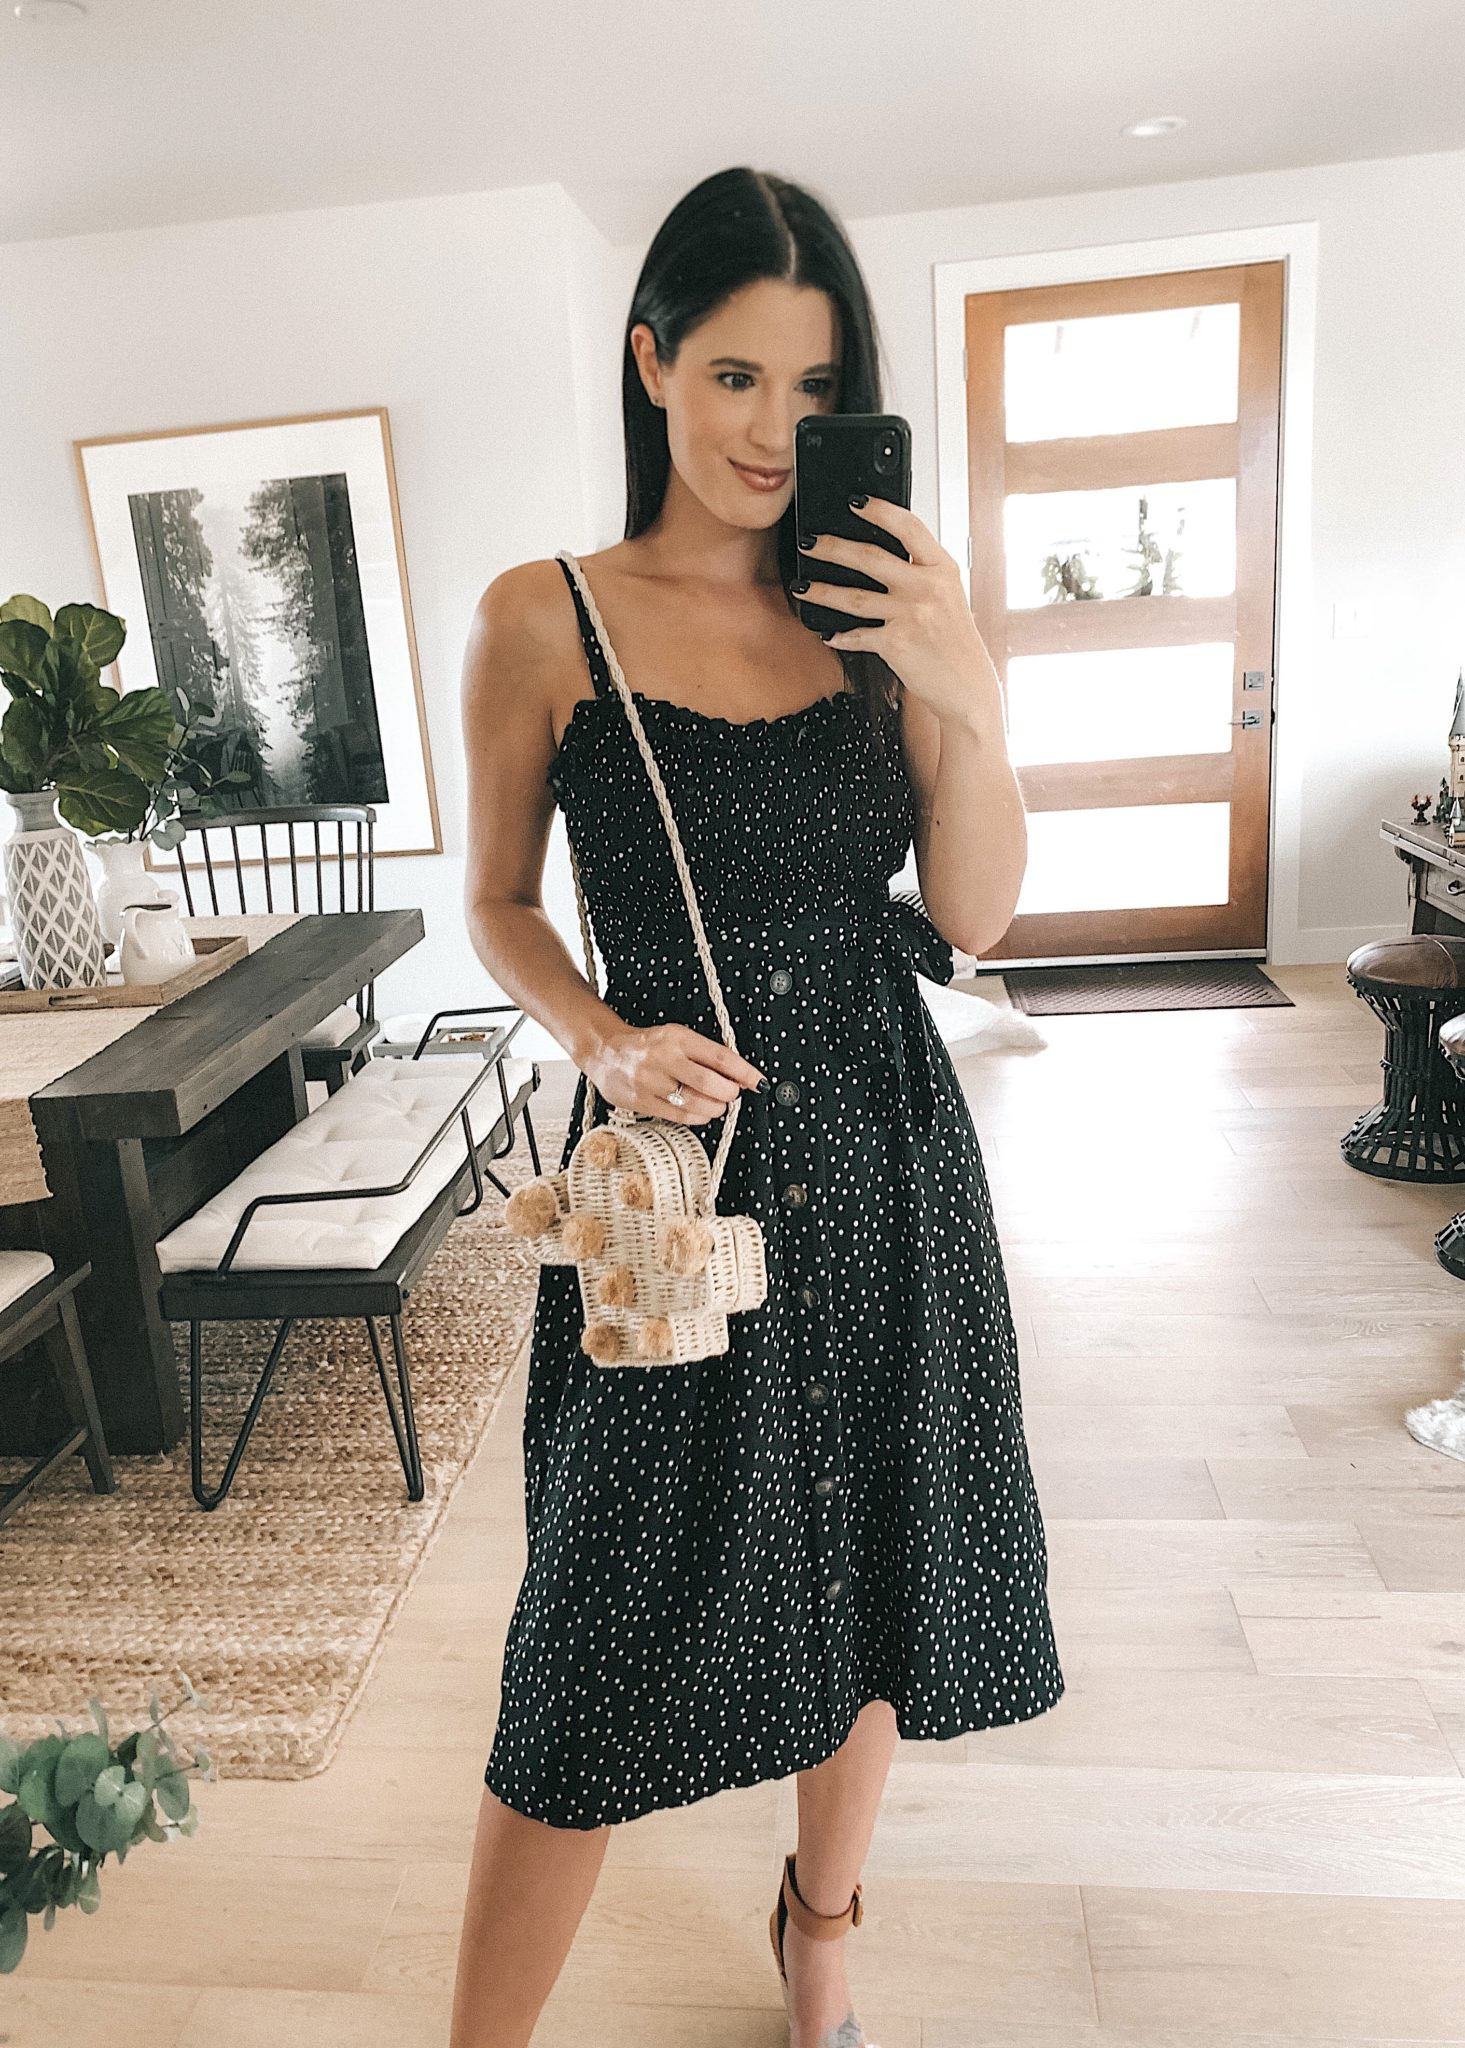 Goodnight Macaroon Summer Dresses Try-On by popular Austin fashion blog, Dressed to Kill: image of a woman standing in her house and wearing a Goodnight Macaroon 'EAVAN' Polka Dot Tie Waist Midi Dress.